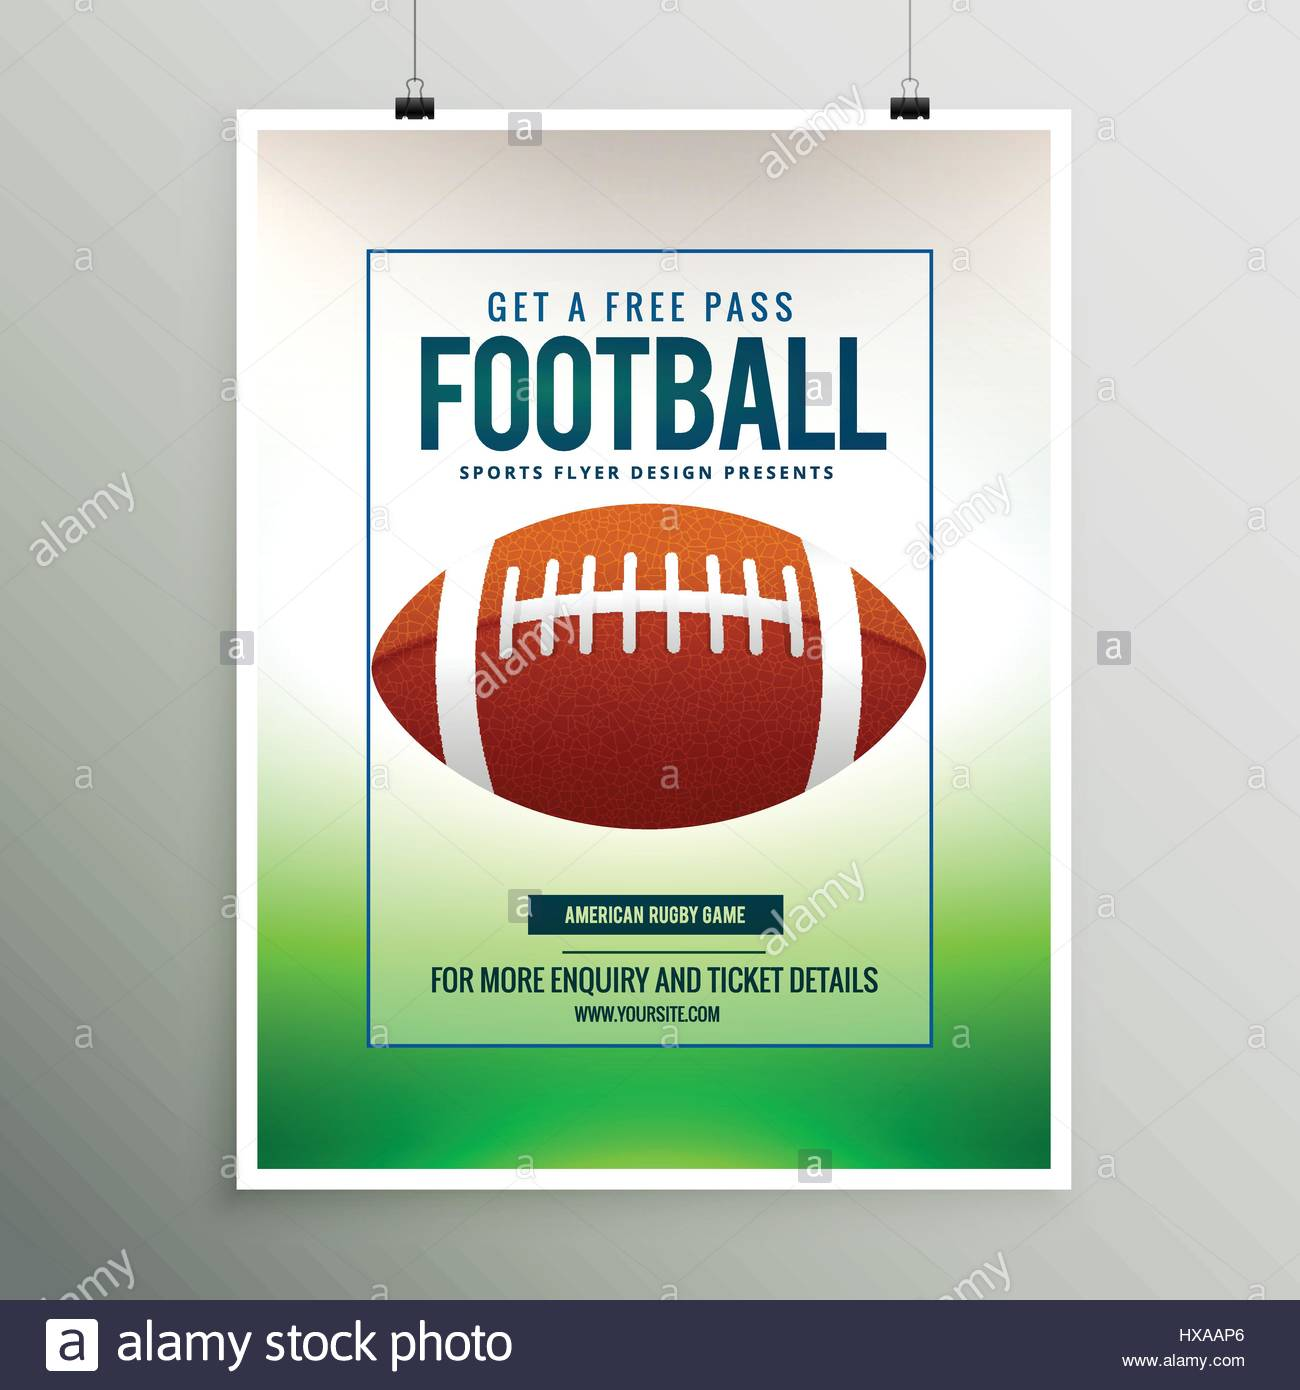 rugby football game flyer template stock vector art illustration